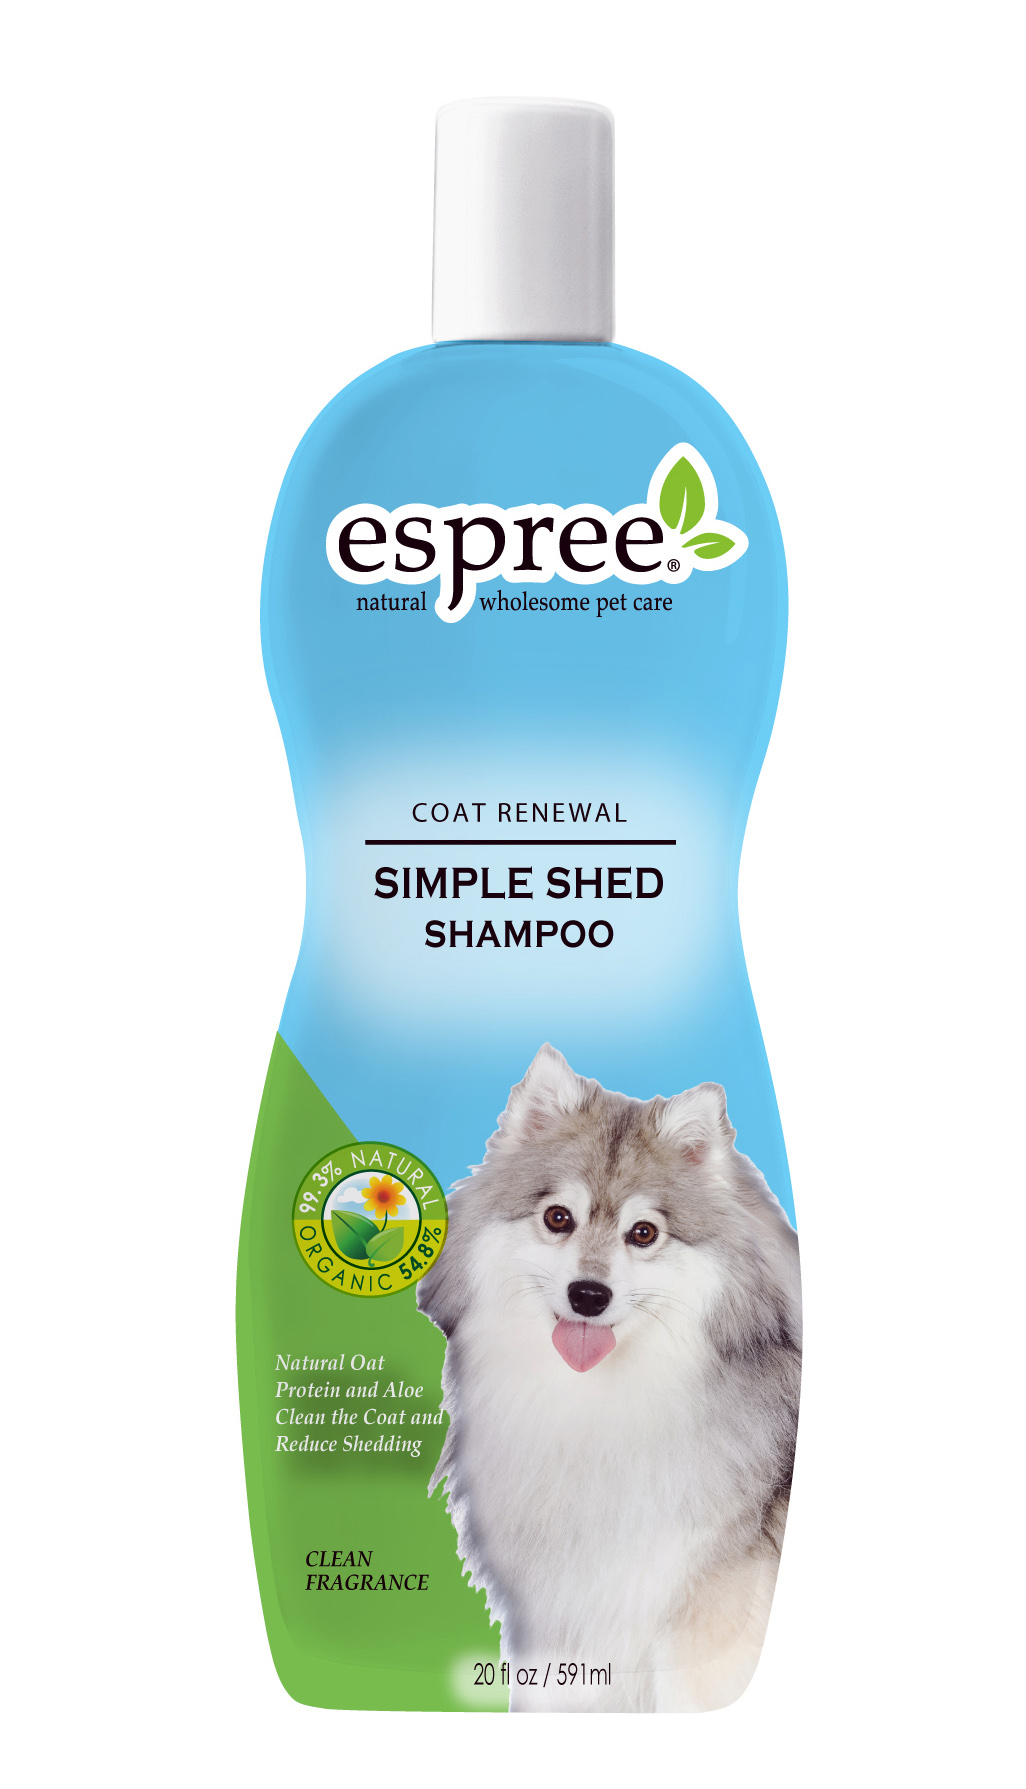 Espree Simple Shed Shampoo